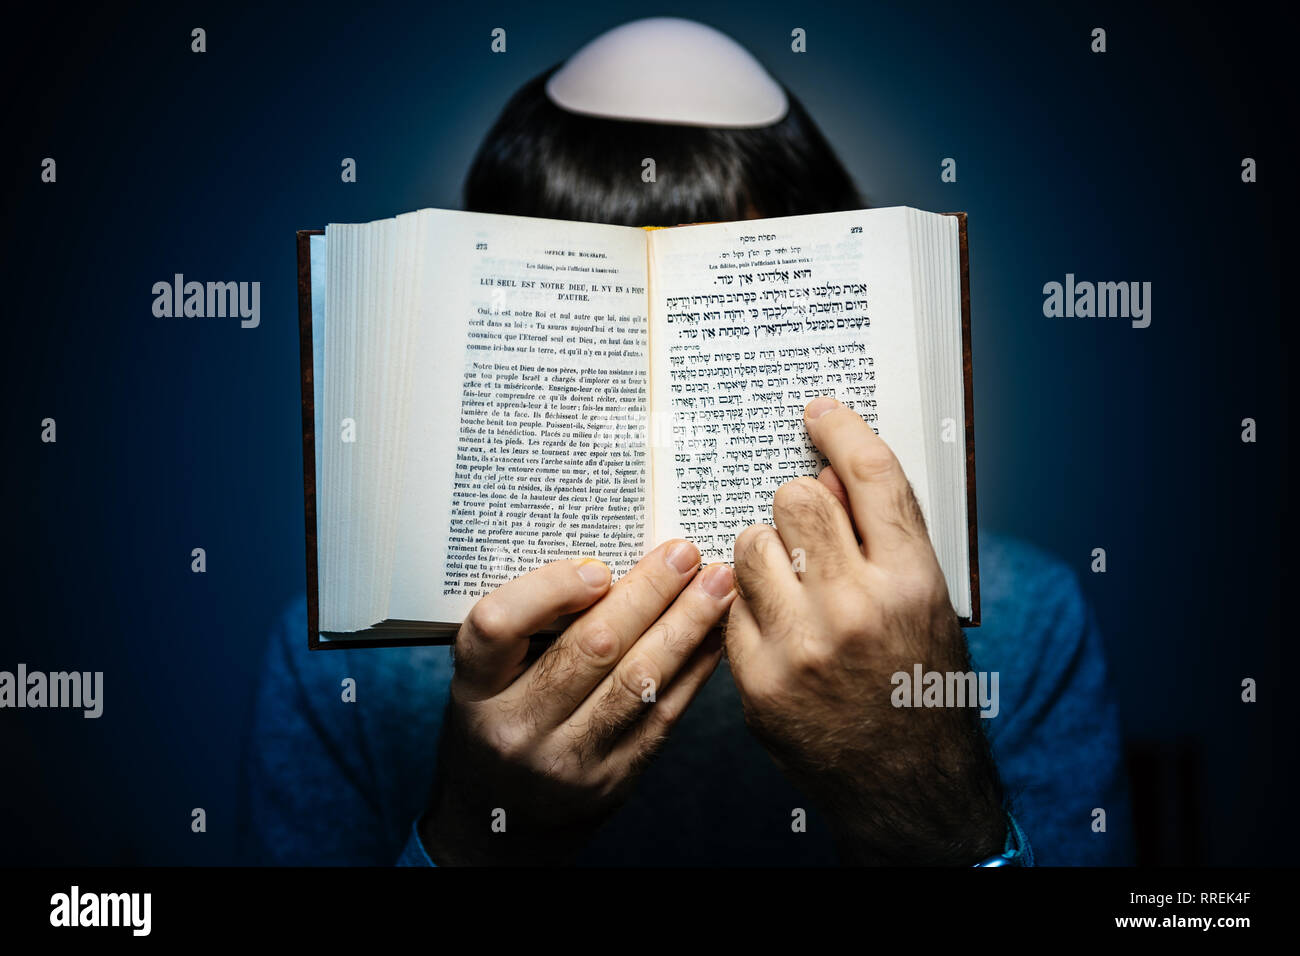 Jewish male wearing Kippah praying reading Bi-lingual Hebrew French mahzor prayer book from 1920 used on the High Holy Days of Rosh Hashanah and Yom Kippur - blue vignette. - Stock Image